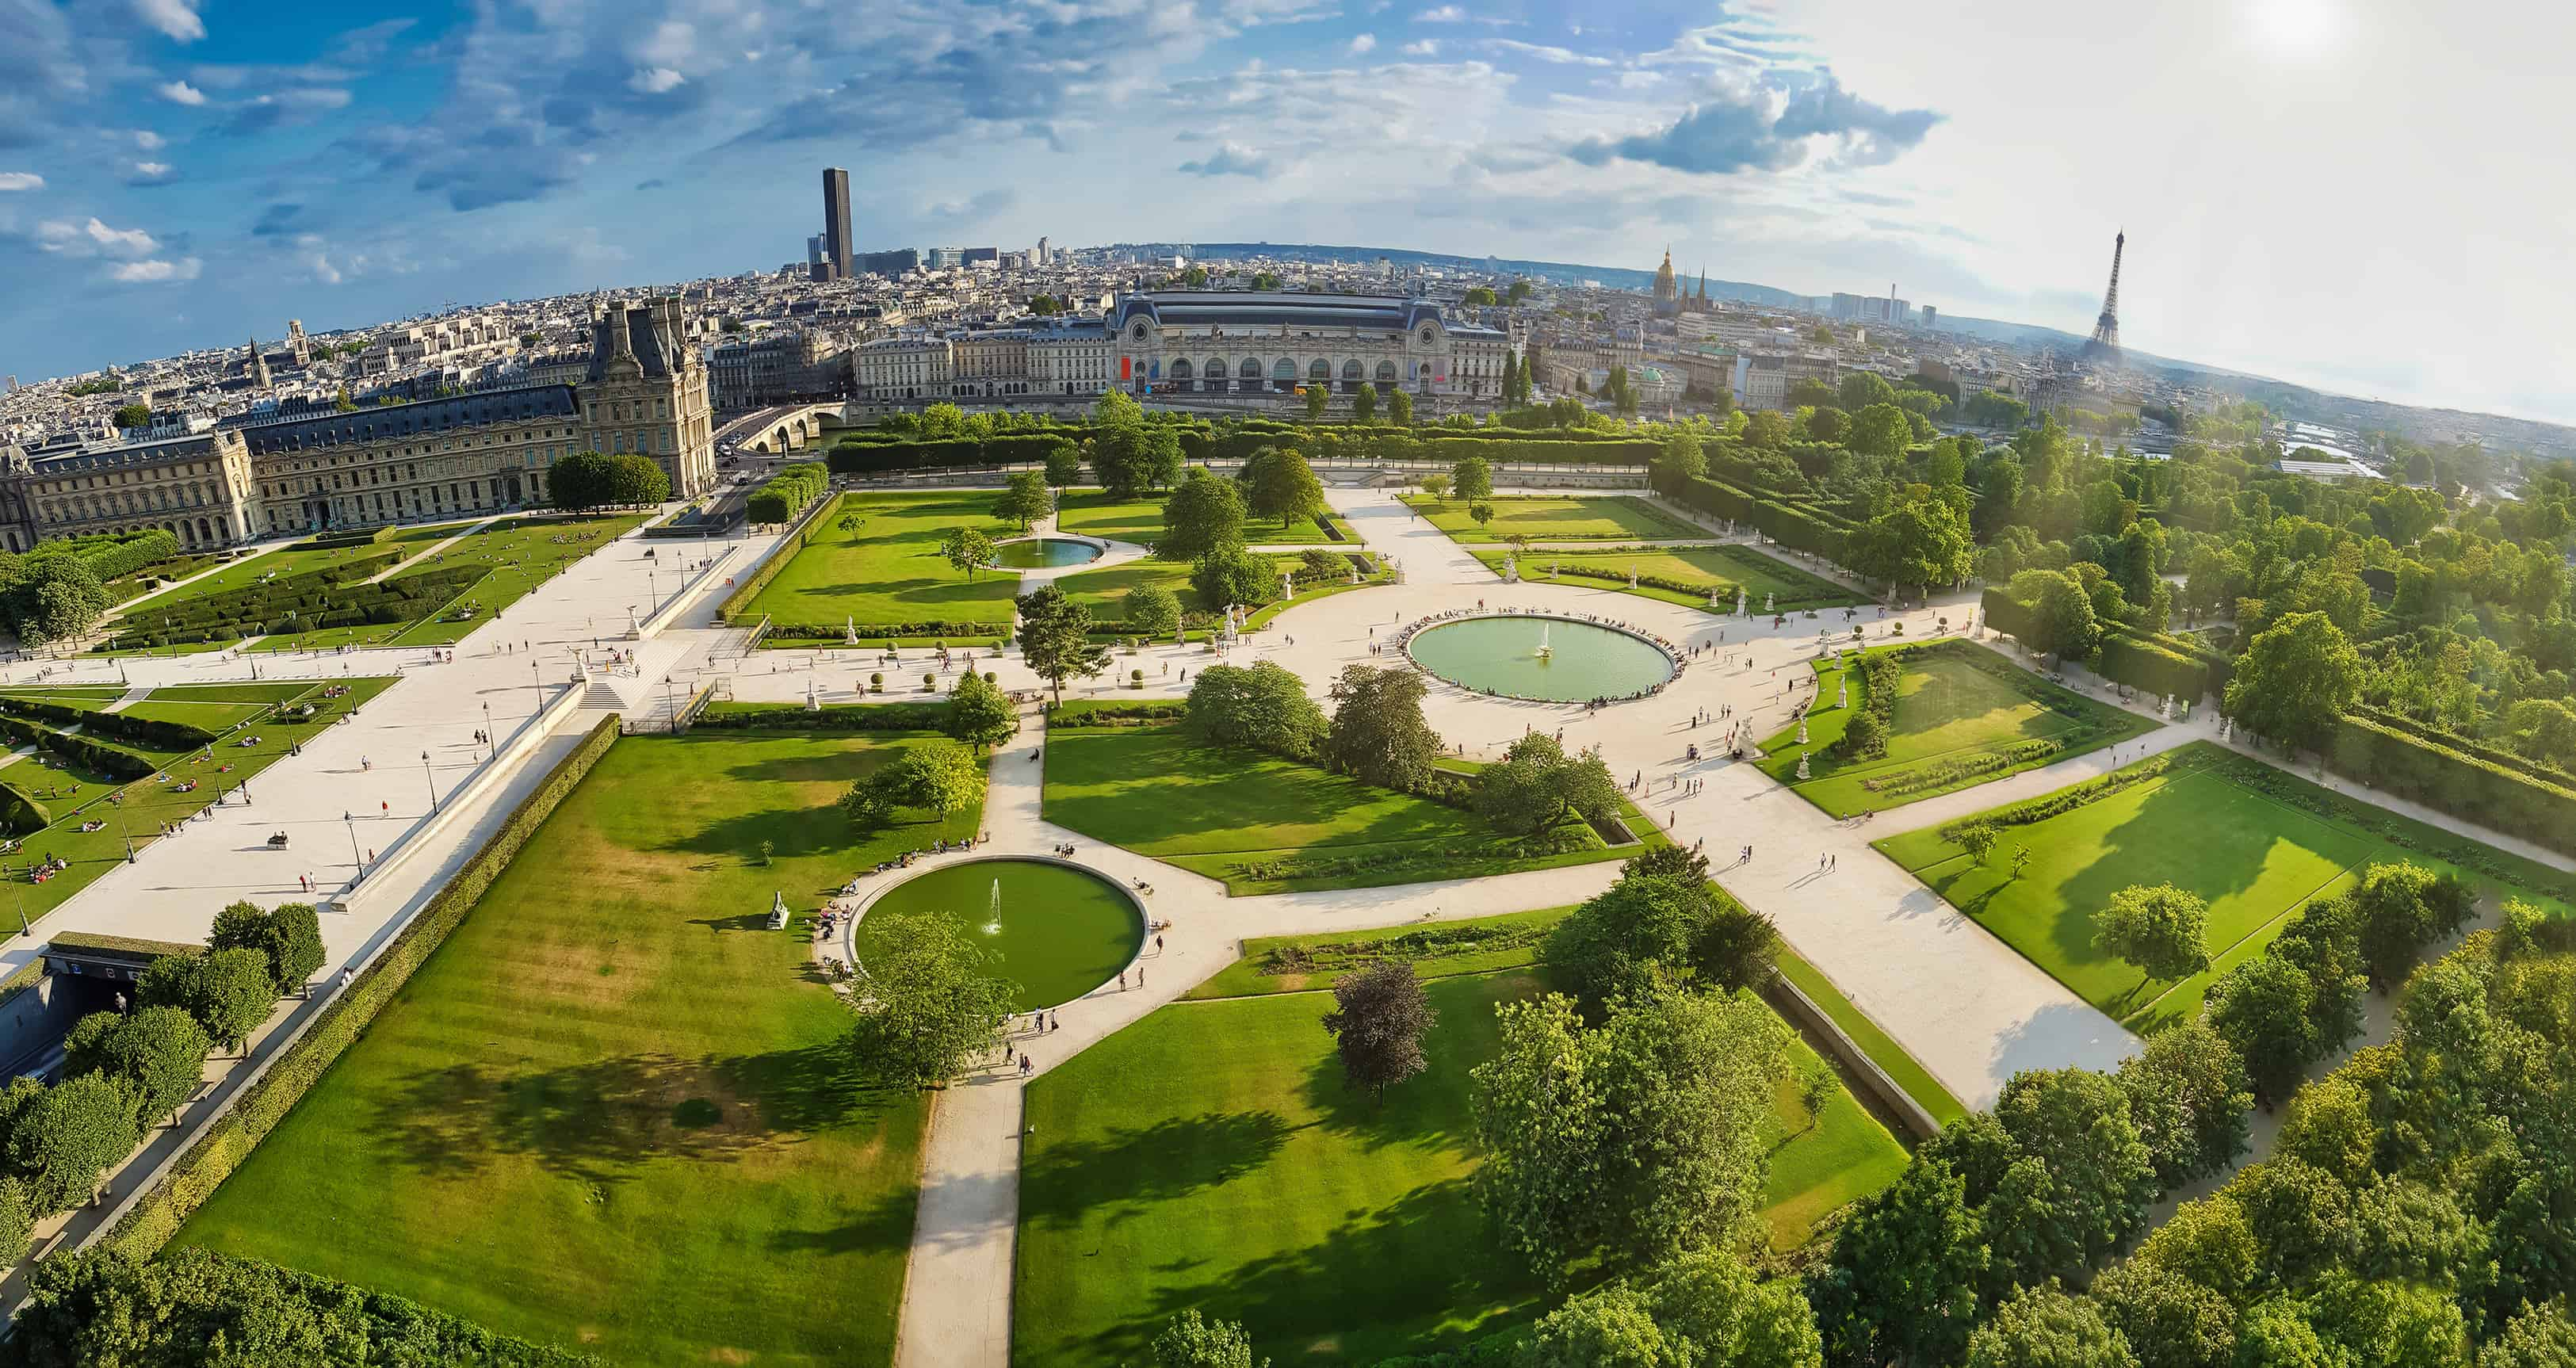 High-angle skyline showing the famous Jardin des Tuileries park of Paris, with the tower of Eiffel in the far horizon.